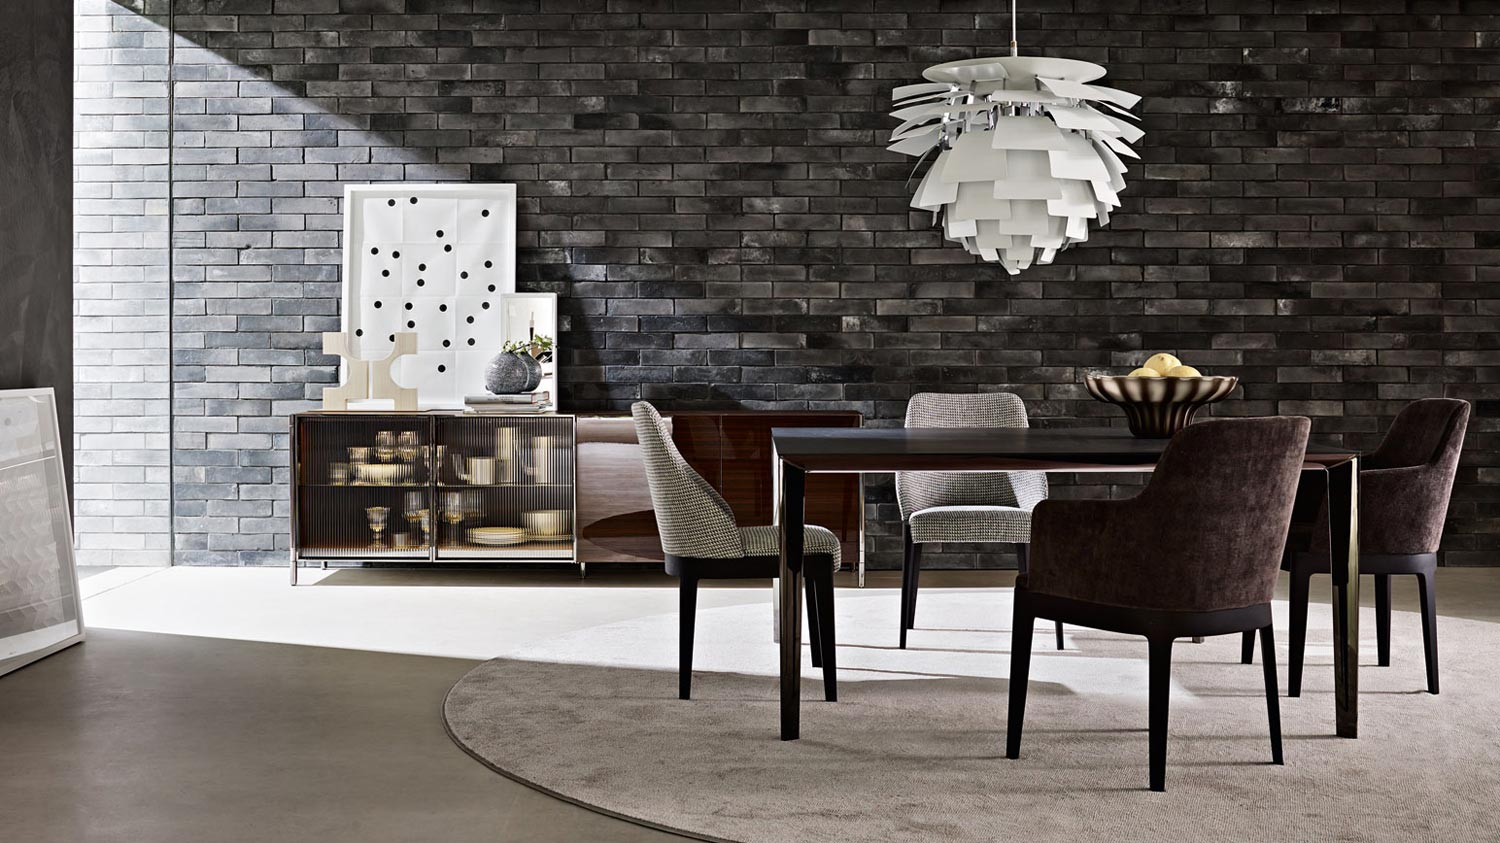 Chelsea Dining Chair By Molteni Amp C Hub Furniture Lighting Living